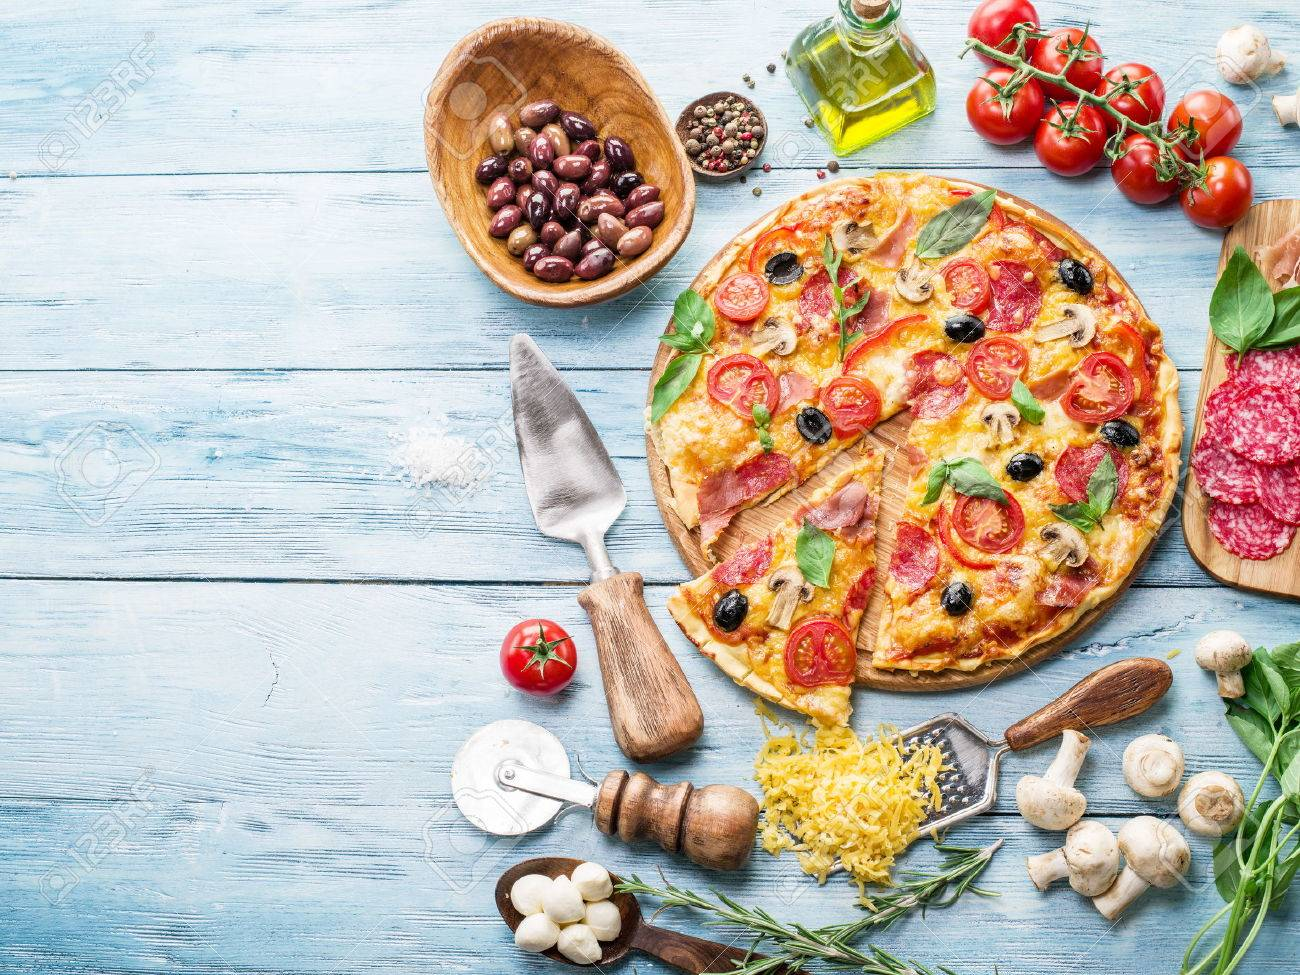 Pizza with mushrooms, salami and tomatoes. Top view. Standard-Bild - 47442946